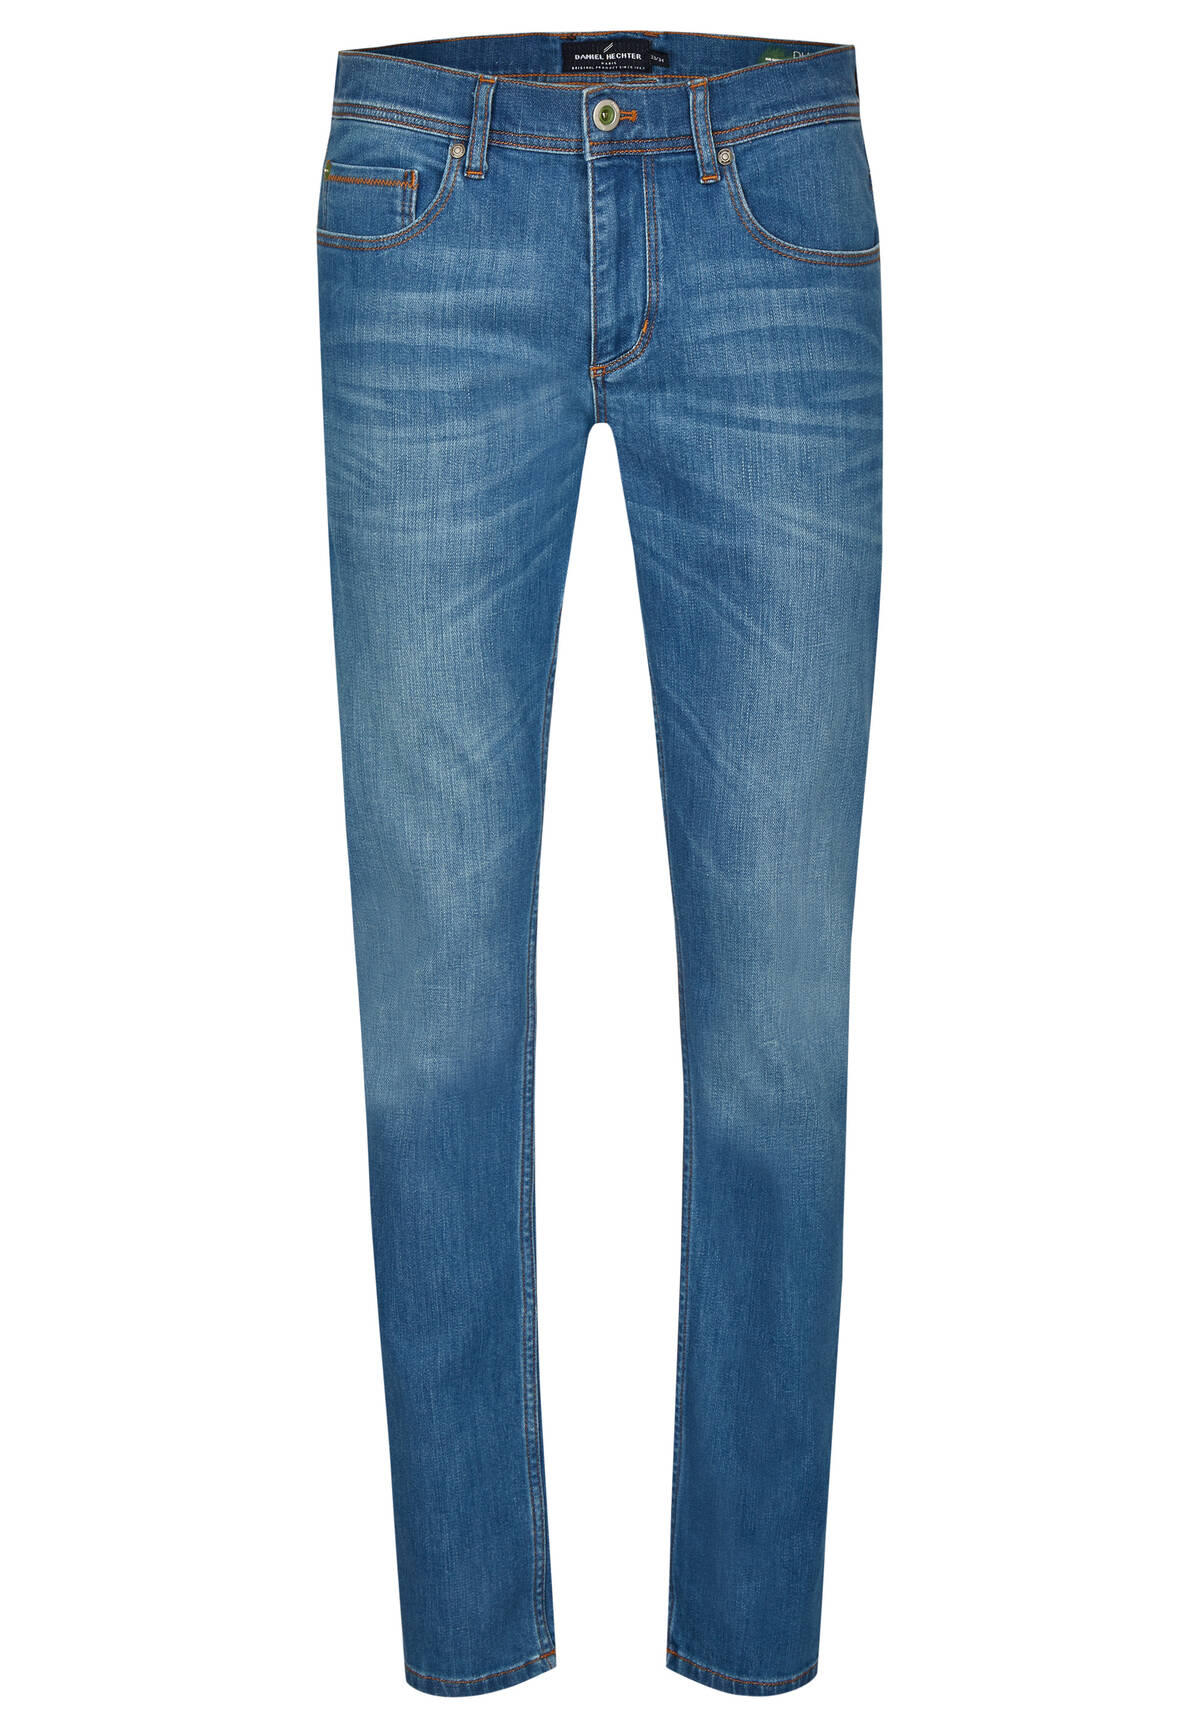 DH ECO Jeans / JEANS